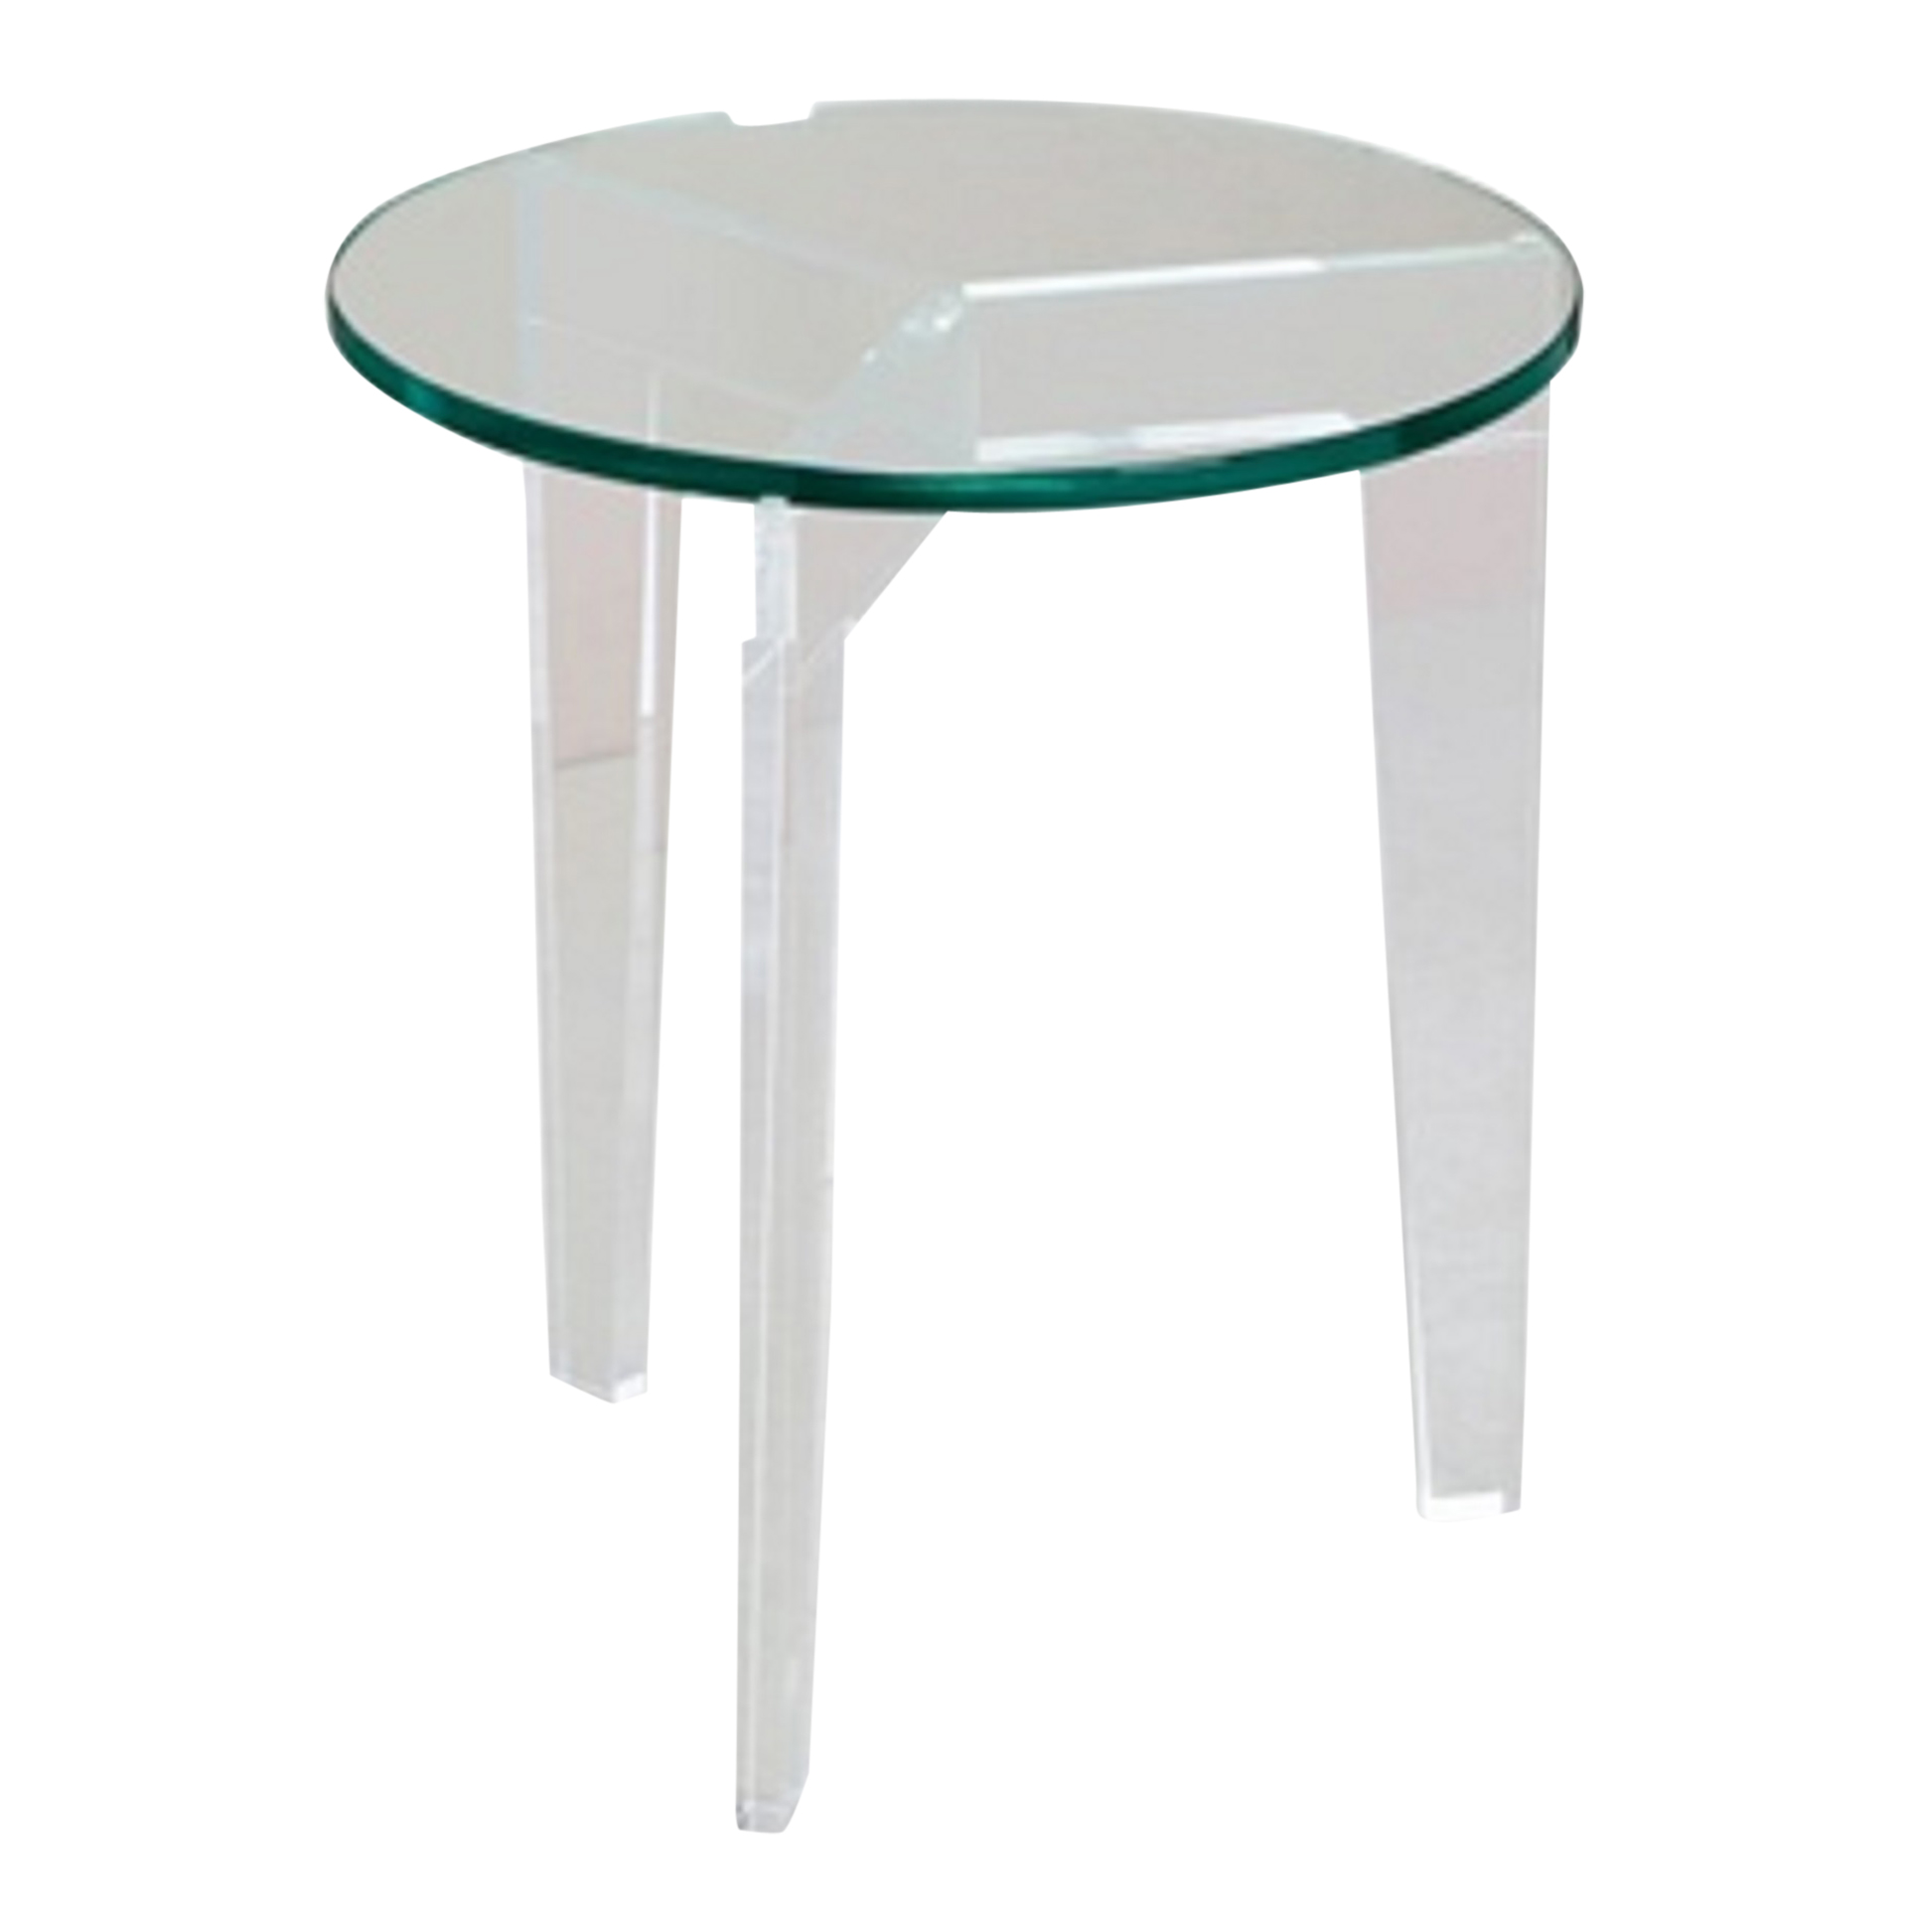 acrylic end table ashley accent tables small oval white pedestal side porcelain lamp high top kitchen dark wood console patio furniture solid trestle dining cabinet printer stand